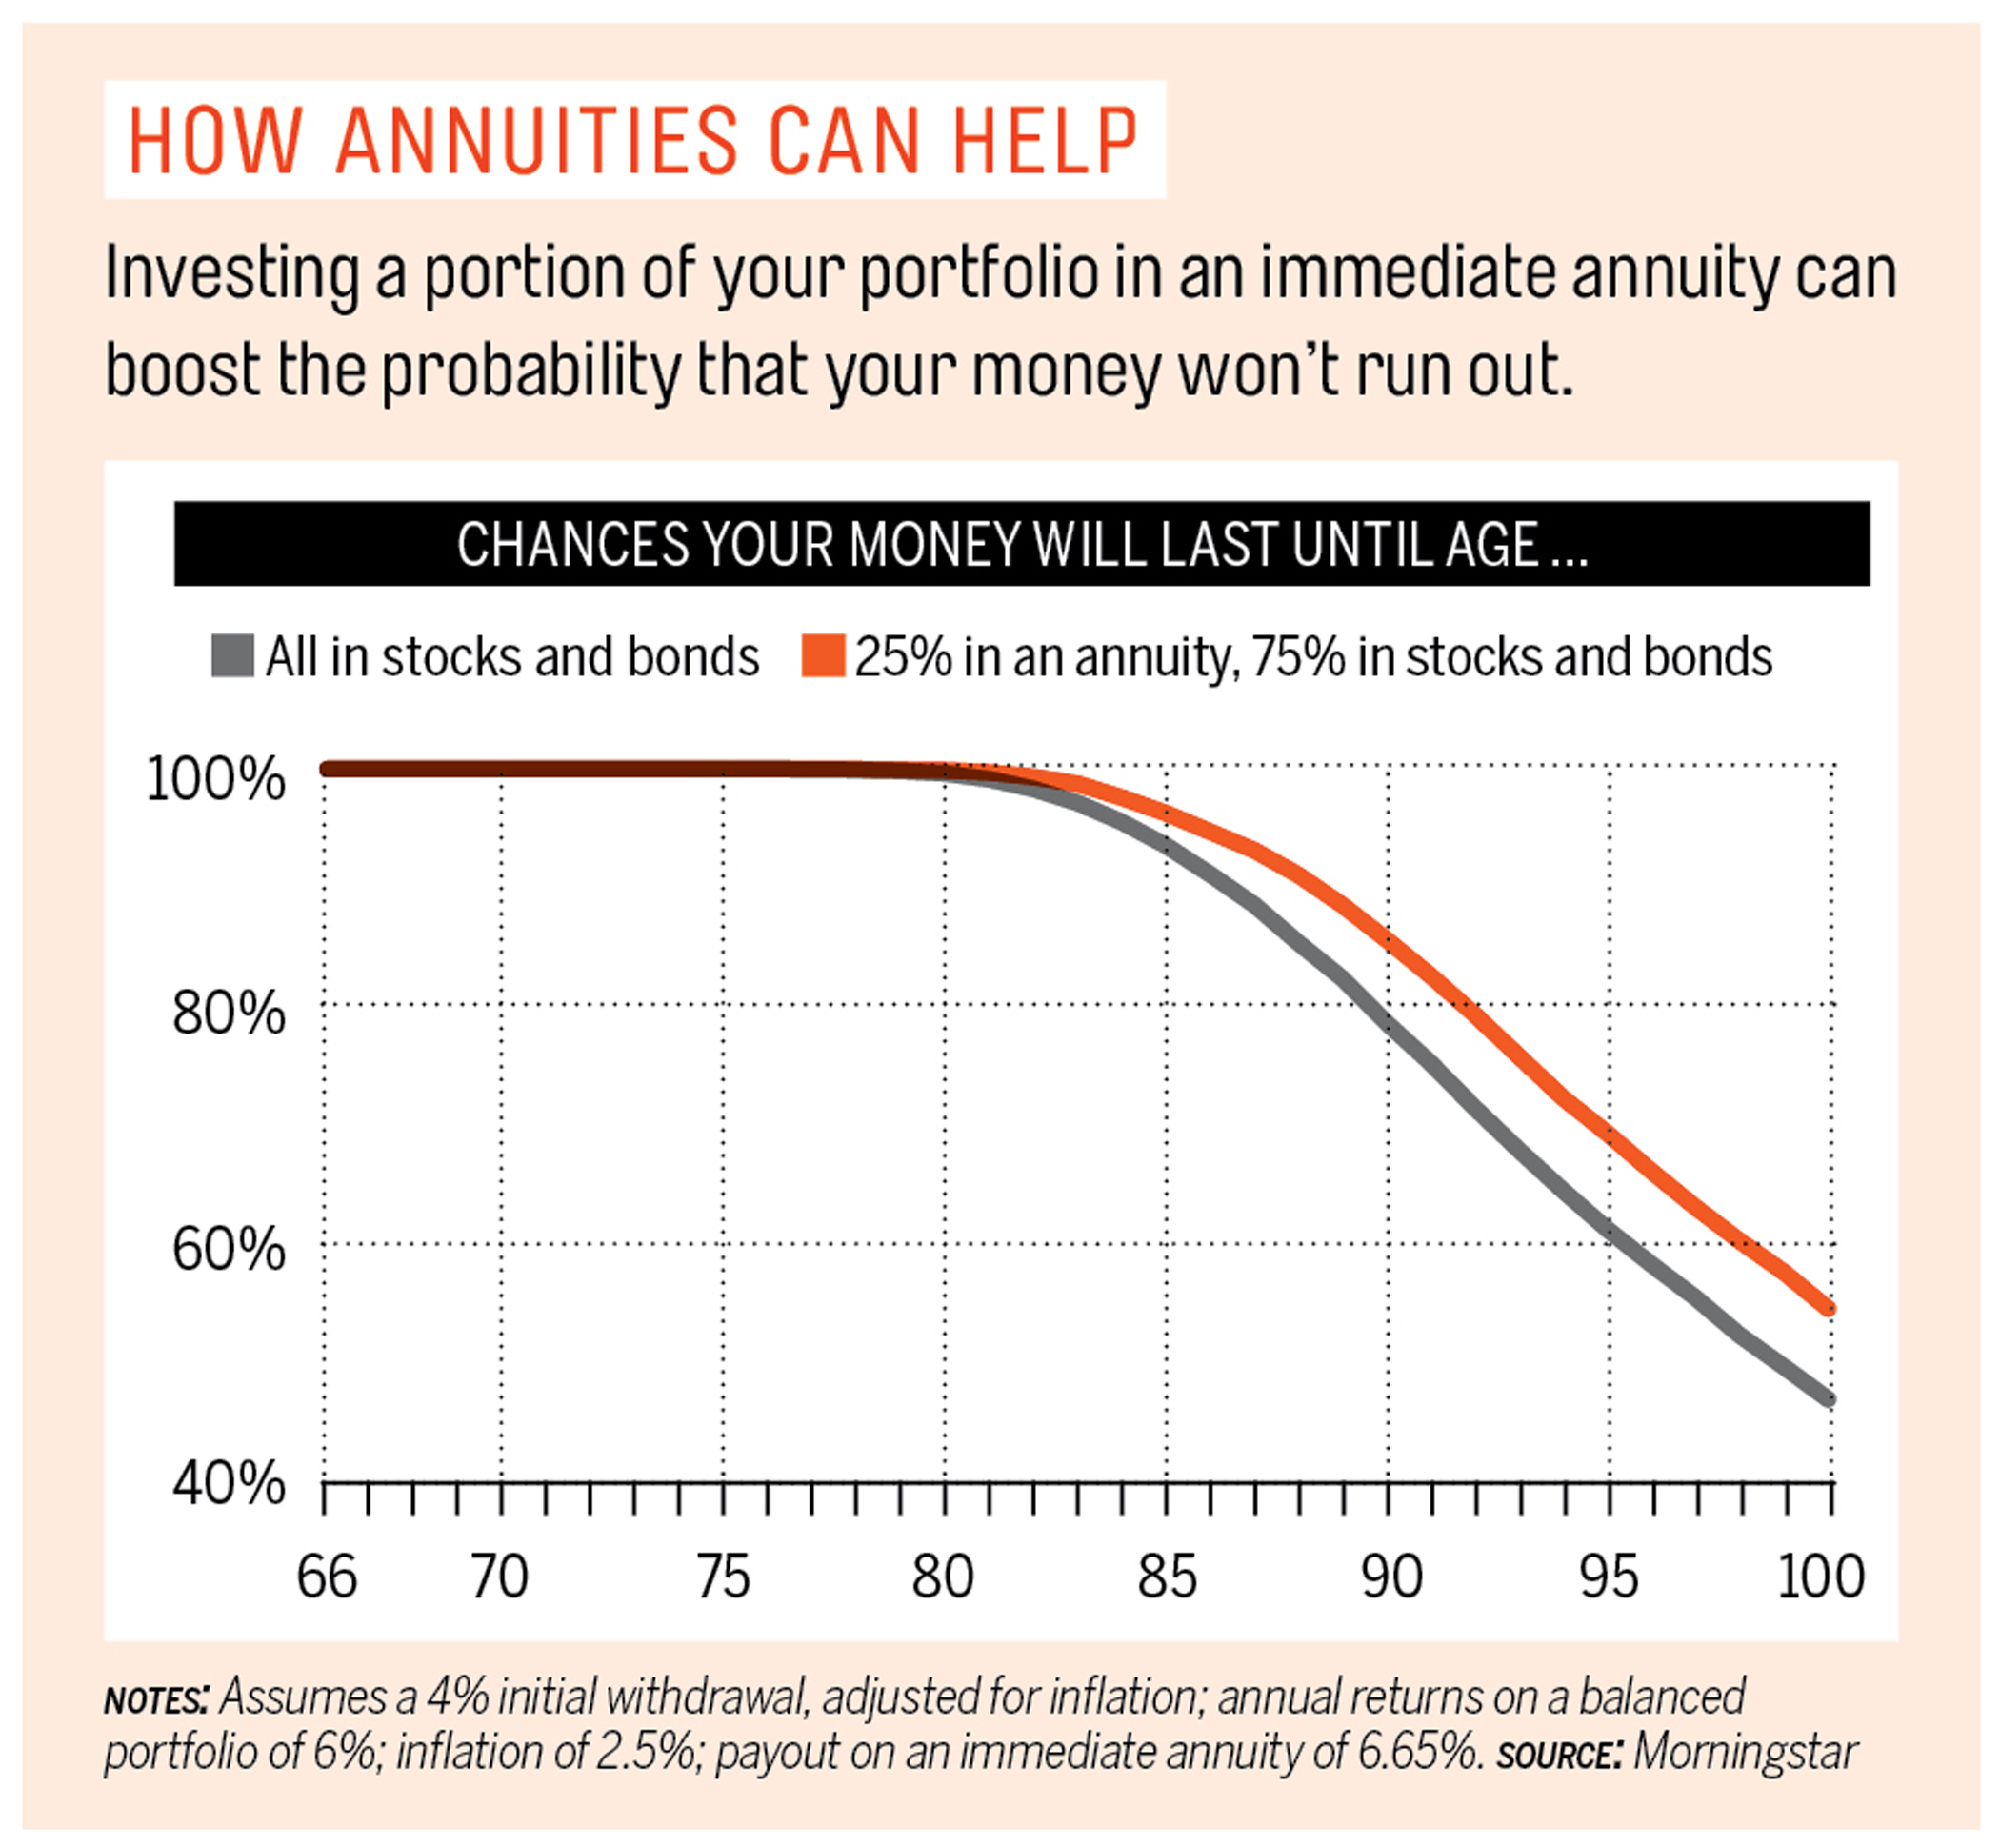 How annuities can help